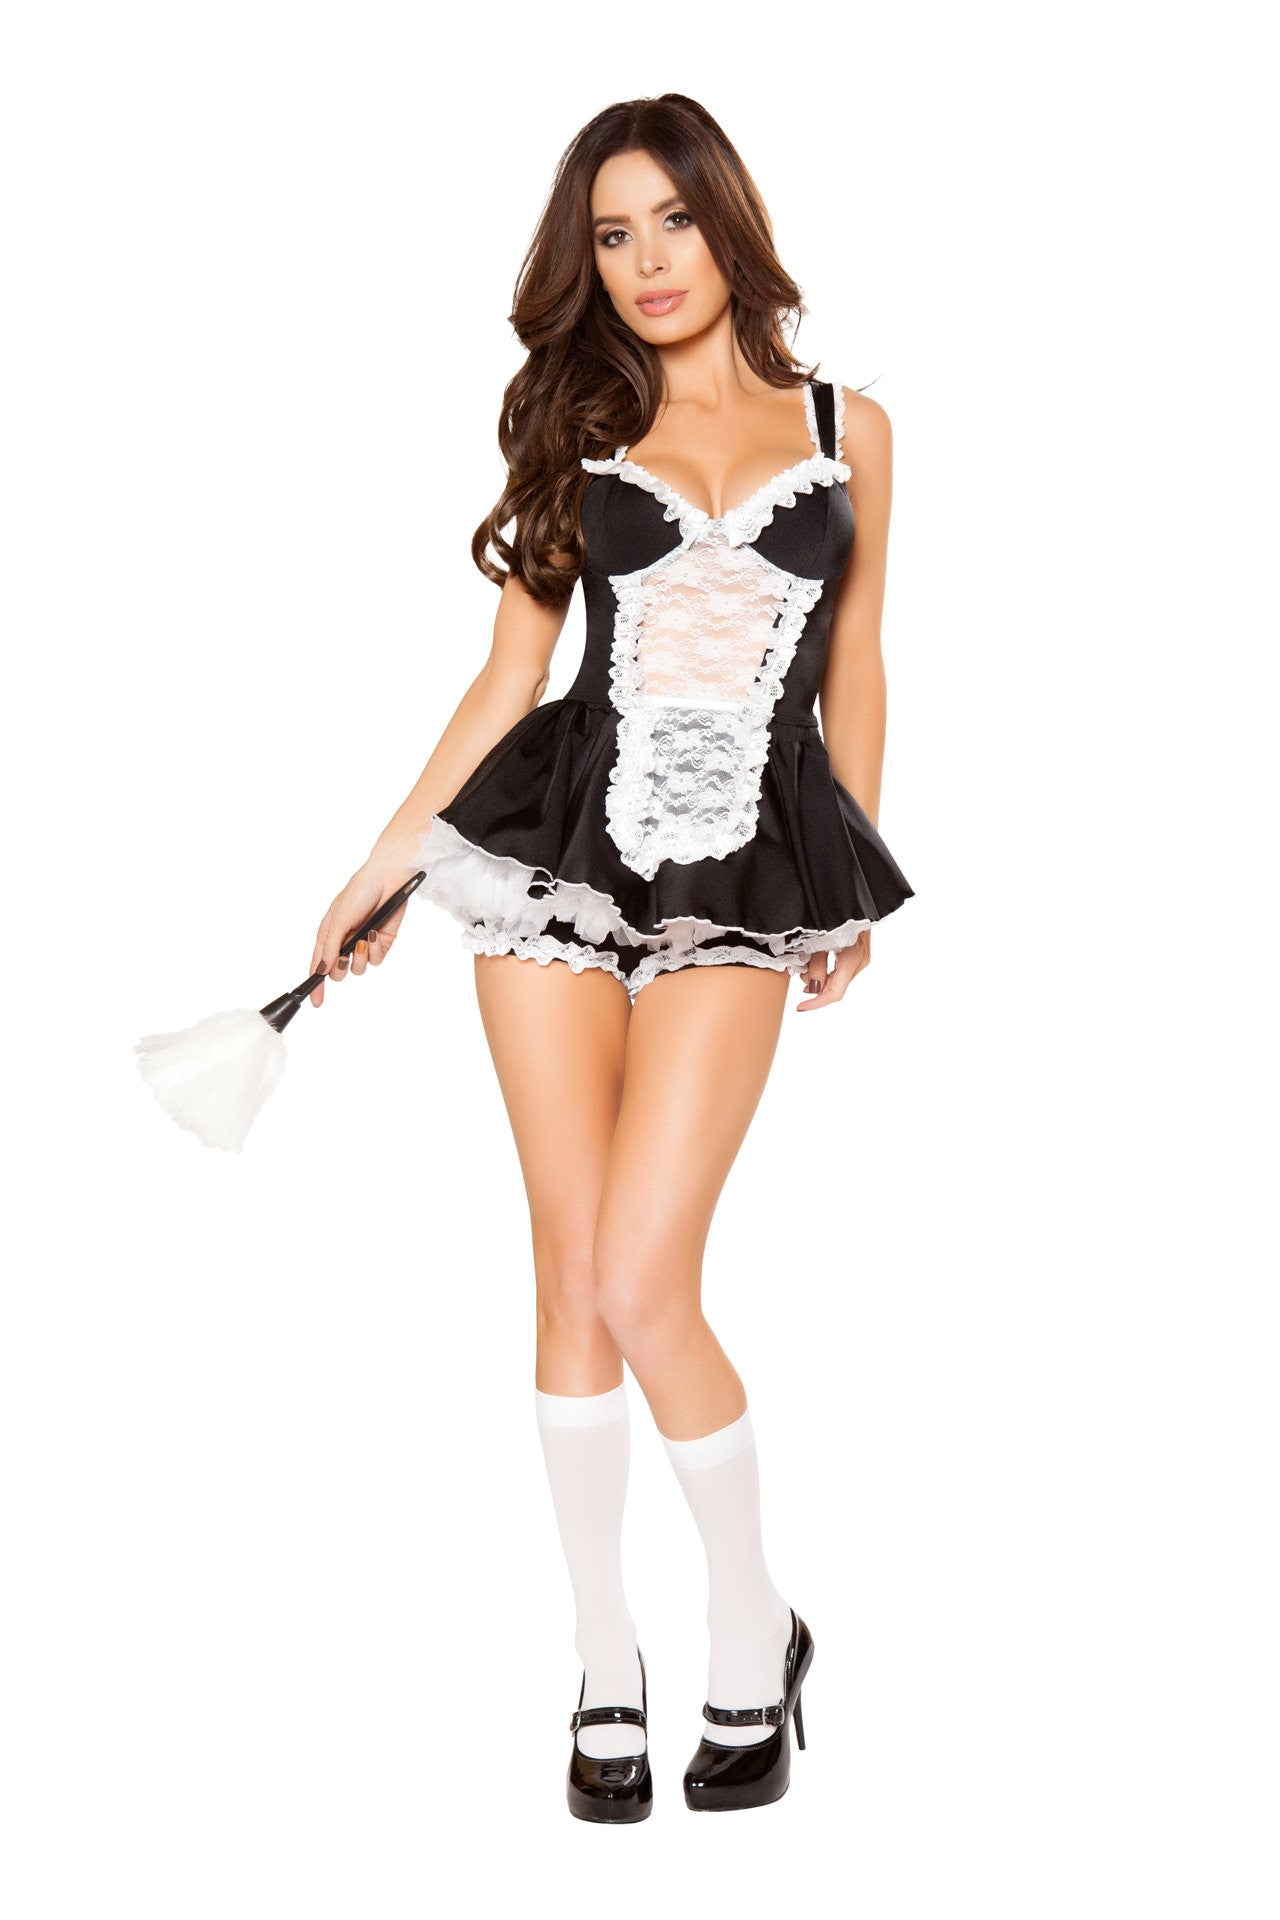 10087 - 4pc Maid You Do It ${description} | Roma Costume and Roma Confidential wholesale manufacturer of Women Apparel bulk world wide wholesale and world wide drop ship services for Adult Halloween Costumes, Sexy and Elegant Lingerie, Rave Clothing, Club wear, and Christmas Costumes. Costumes, Roma Costume, Inc., Roma Costume, Roma Confidential, Wholesale clothing, drop ship, drop ship service, Wholesale Lingerie, Wholesale Adult Halloween Costumes, Rave Clothing, EDM Clothing, Festival Wear, Christmas Costumes, Clubwear, Club wear.